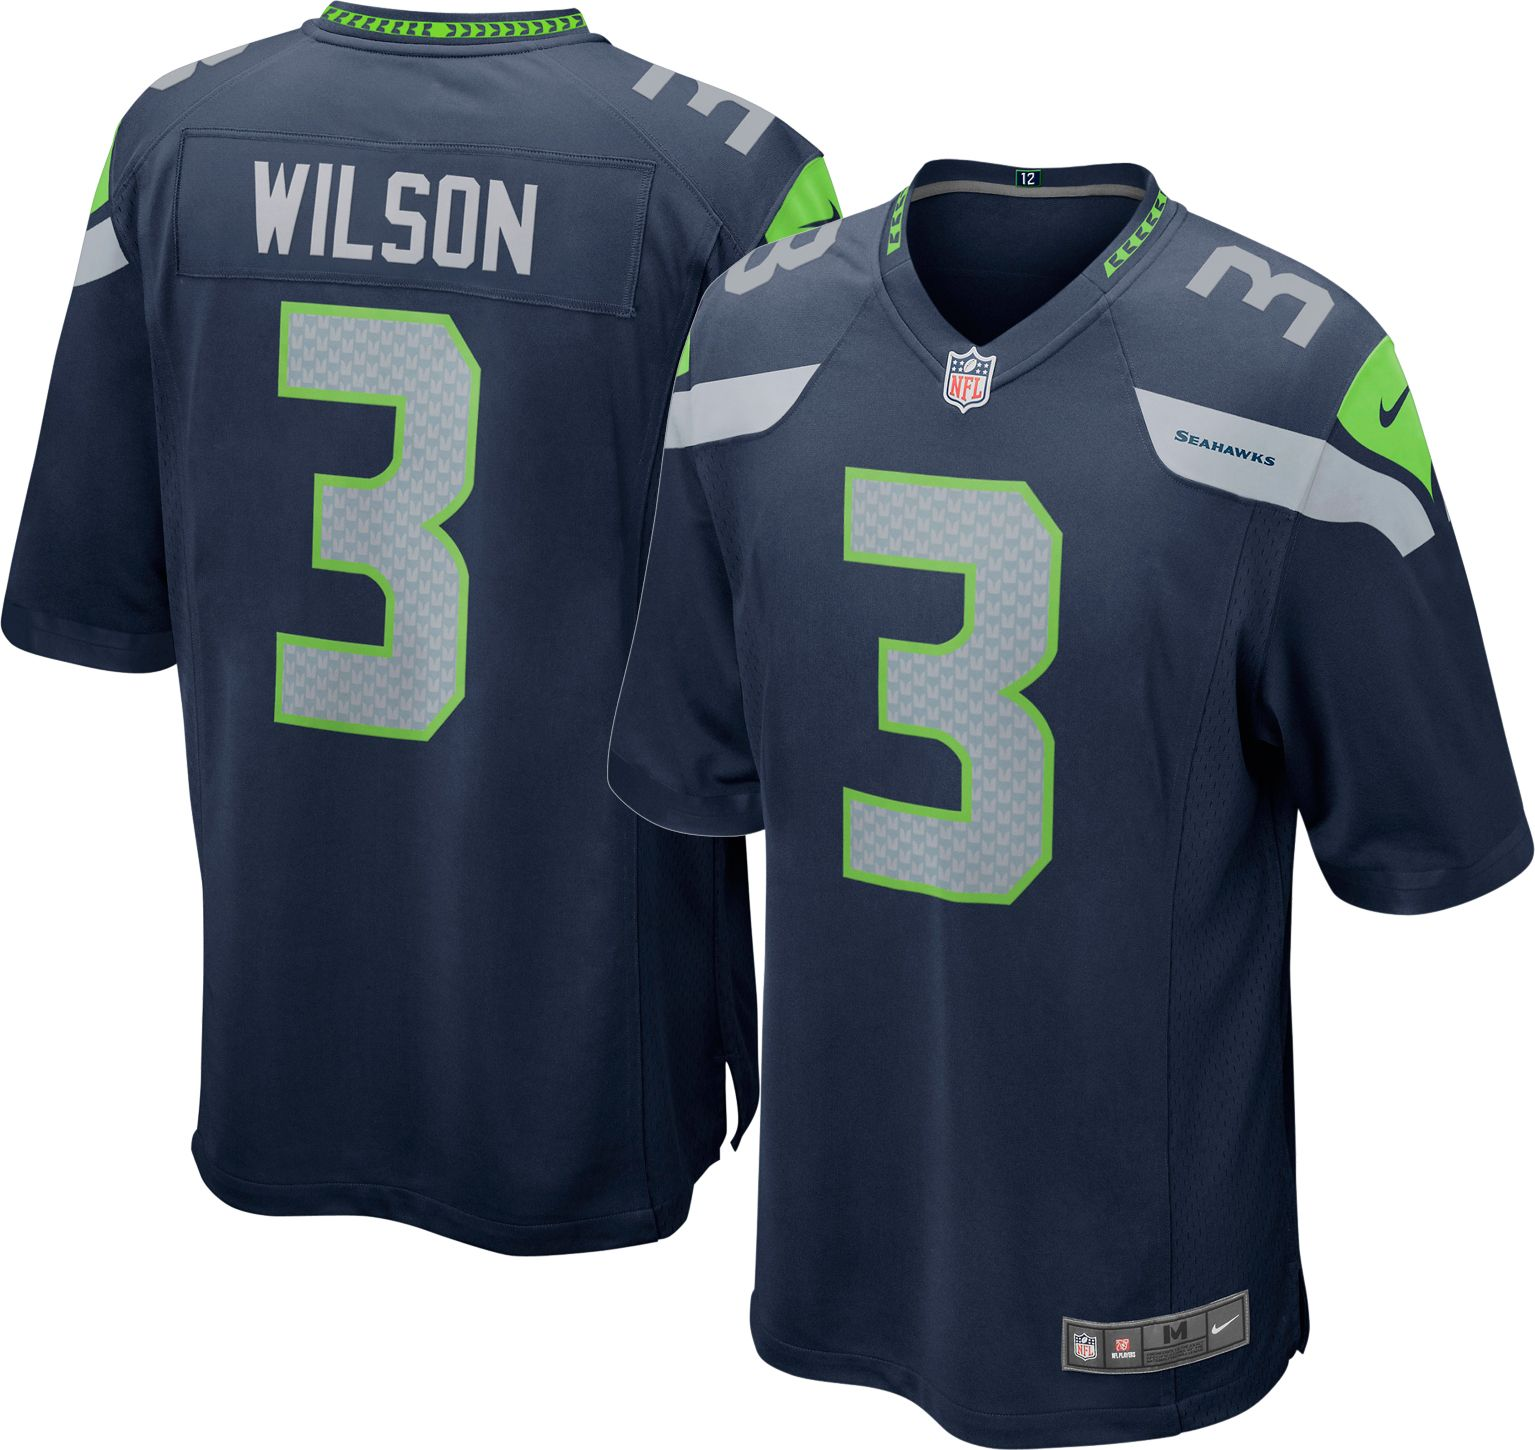 Nike Men s Home Game Jersey Seattle Russell Wilson  3 585bbd9f1493a